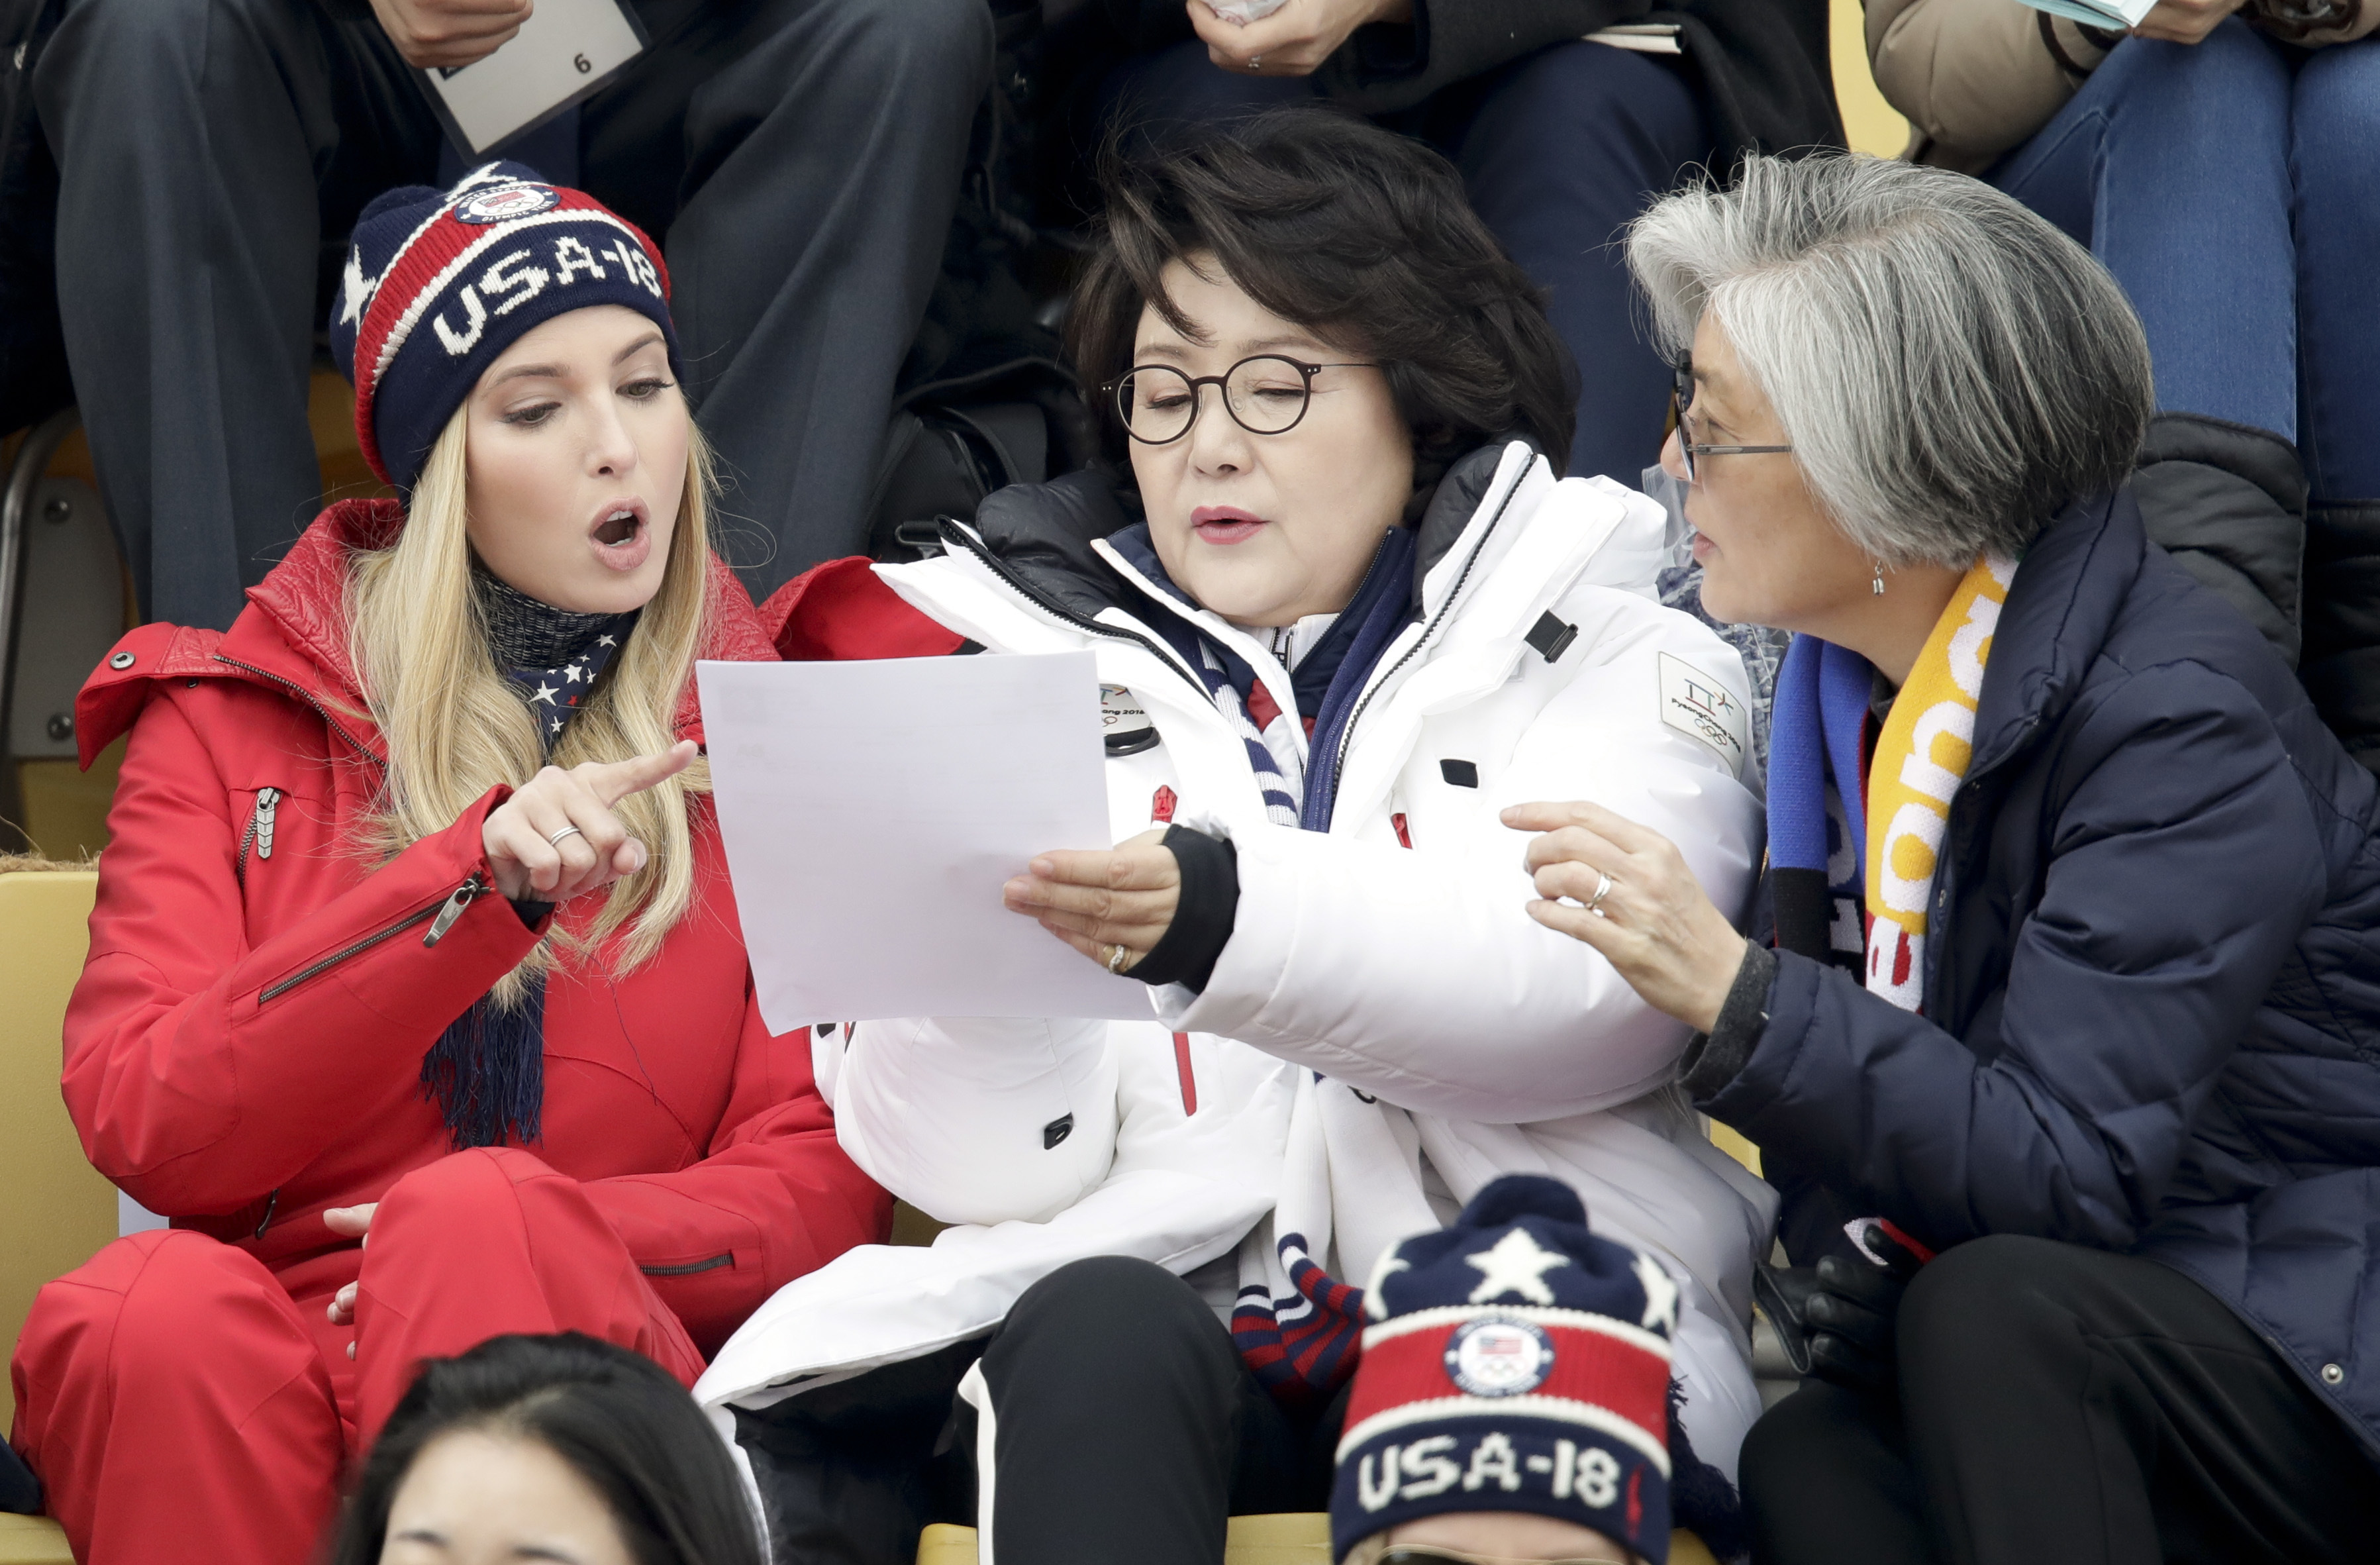 Ivanka Trump, left, talks with Kim Jung-sook, wife of the South Korean President and South Korean Foreign Minister Kang Kyung-wha, right, during the men's Big Air snowboard competition at the 2018 Winter Olympics in Pyeongchang, South Korea, Saturday, Feb. 24, 2018. (AP Photo/Dmitri Lovetsky)